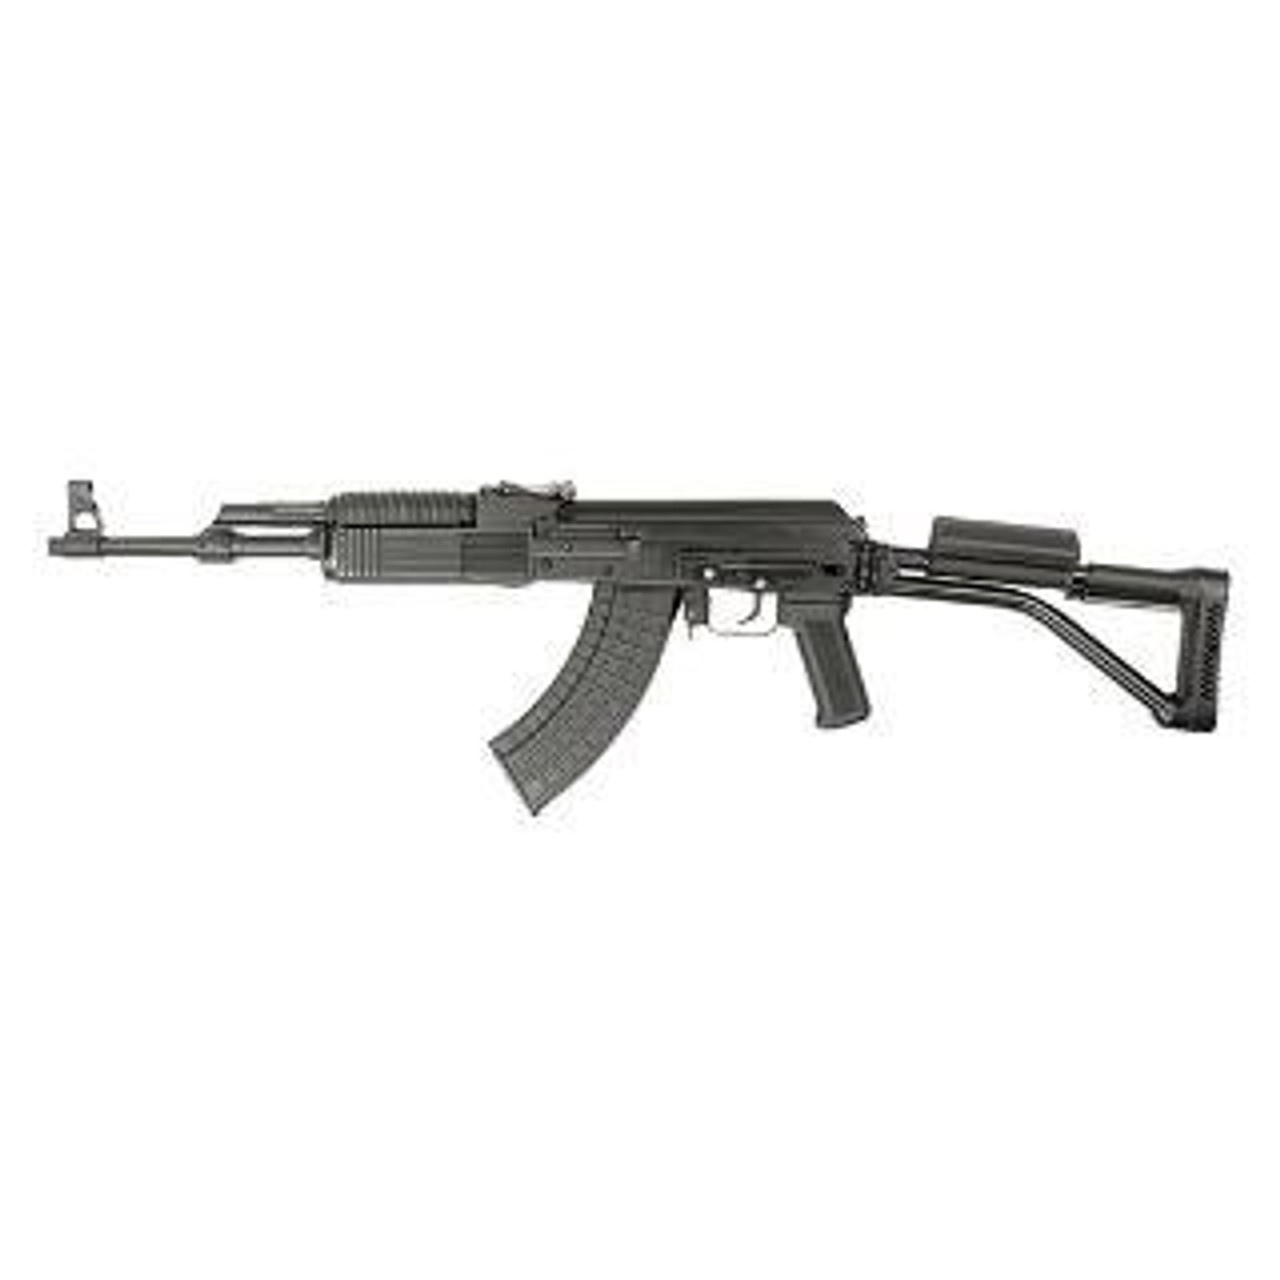 MOLOT VEPR AK-47 Side Folder CALIFORNIA LEGAL- 7.62x39